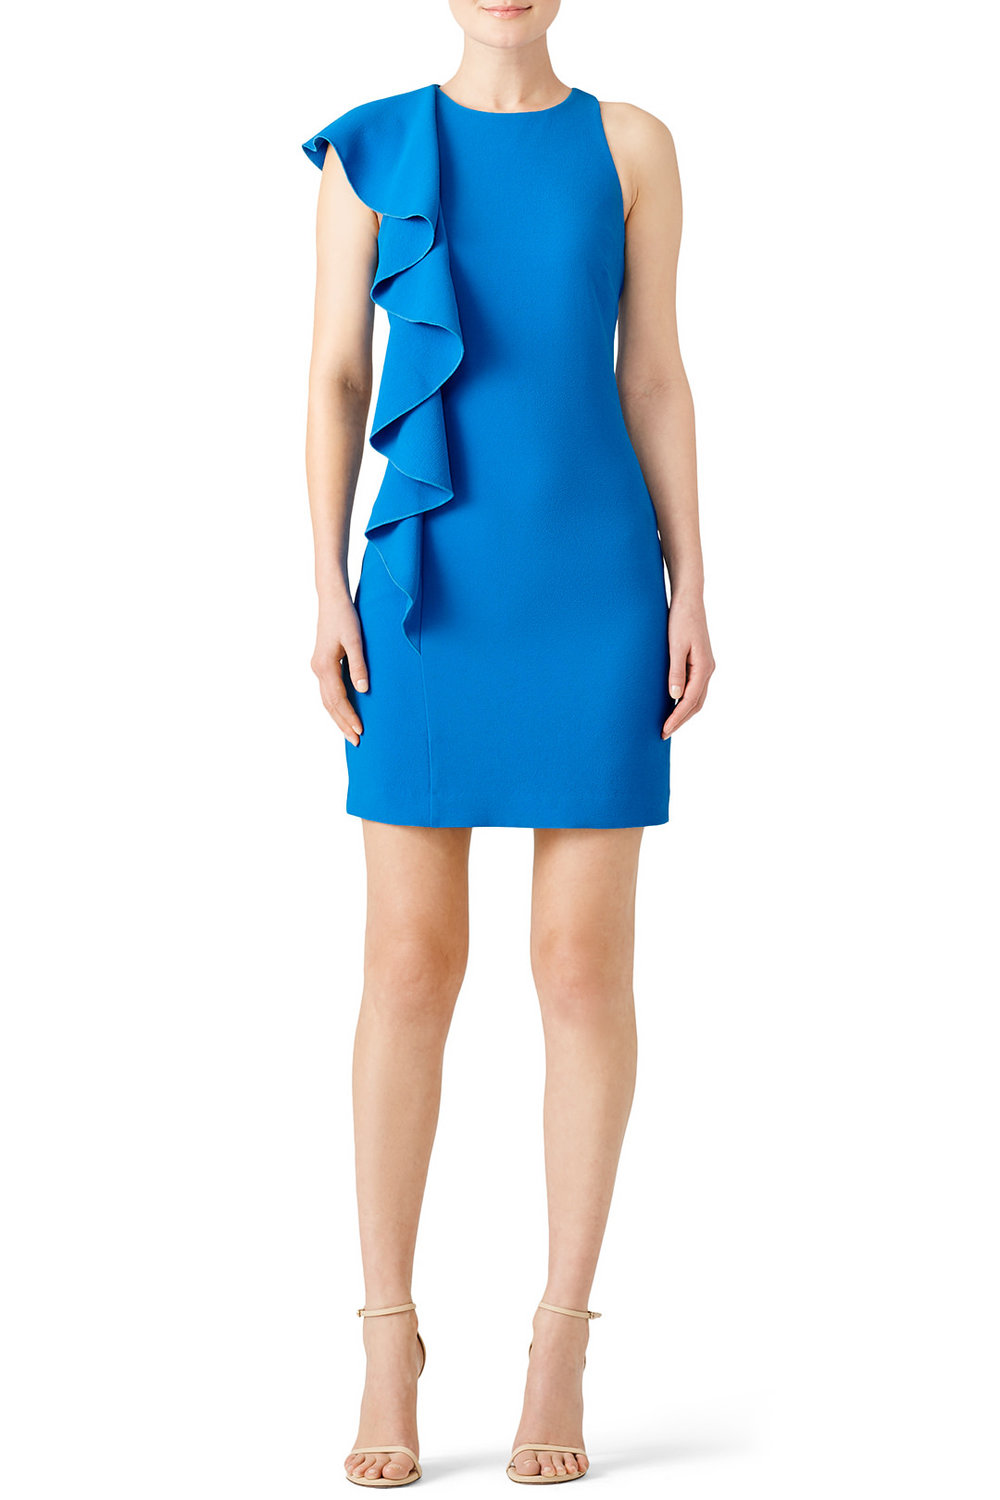 Trina Turk Blue Crescent Dress